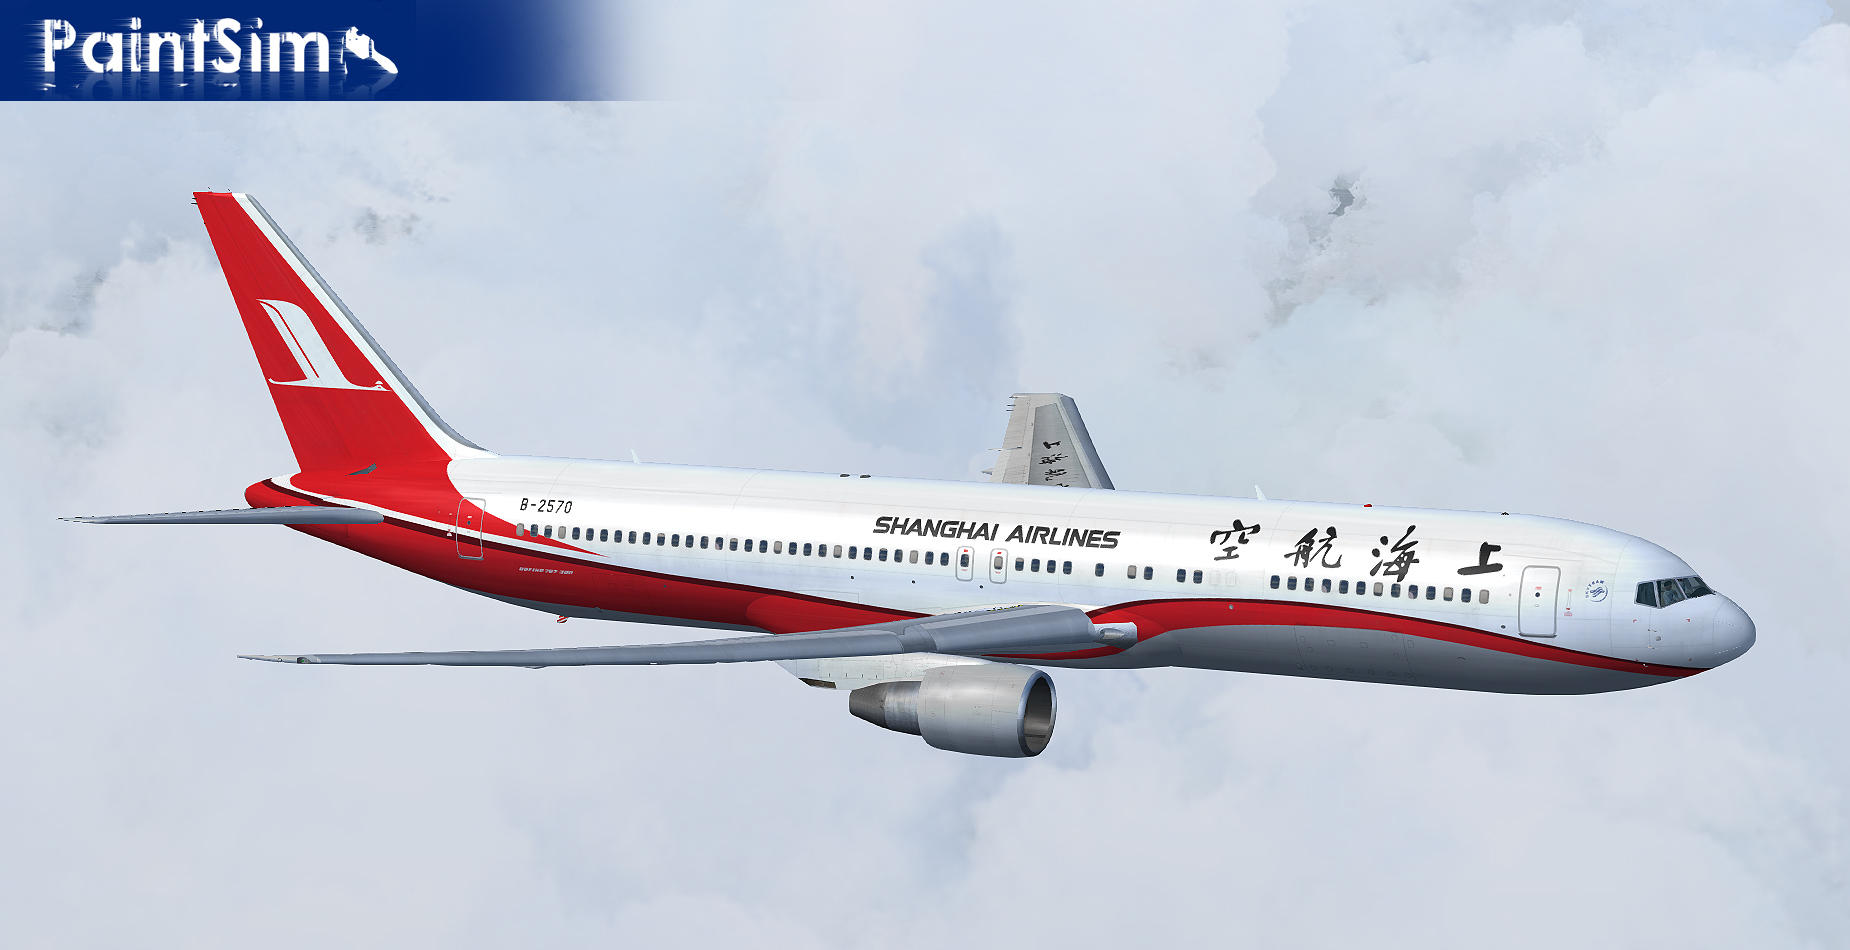 PAINTSIM - HD TEXTURE PACK 5 FOR LEVEL-D BOEING 767-300ER FS2004